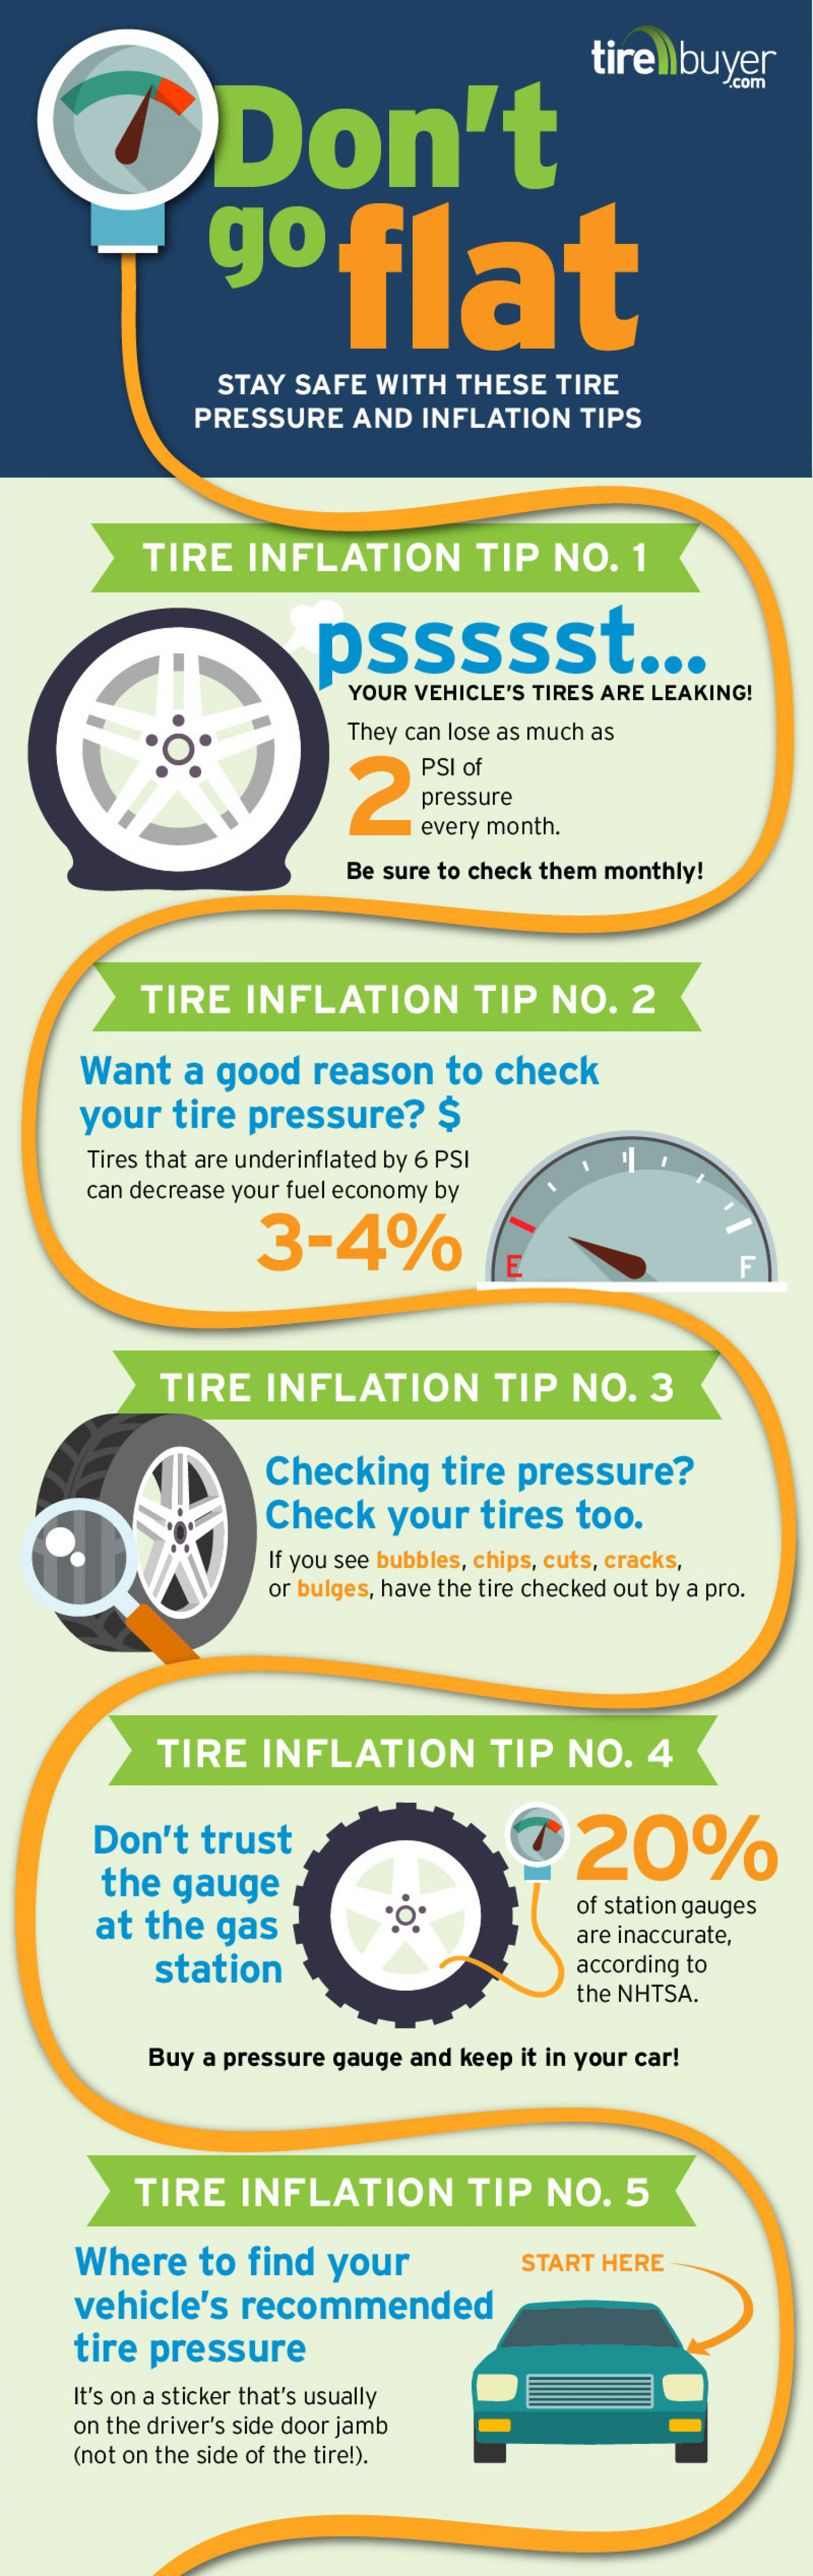 don 39 t go flat stay safe with these tire pressure and inflation tips. Black Bedroom Furniture Sets. Home Design Ideas